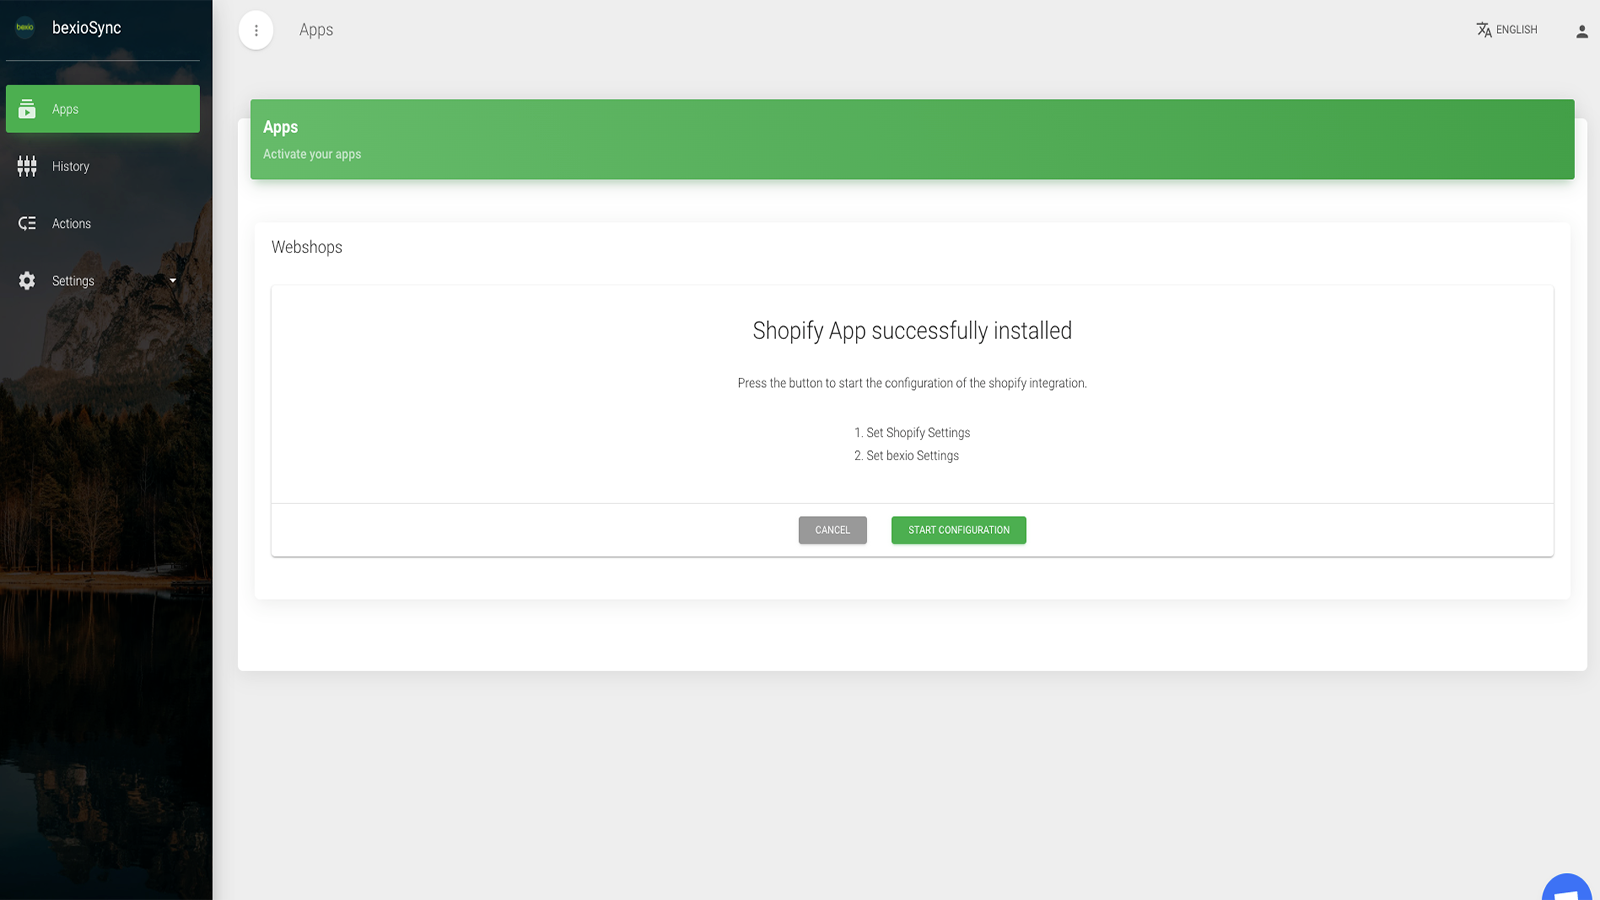 Shopify successful installed